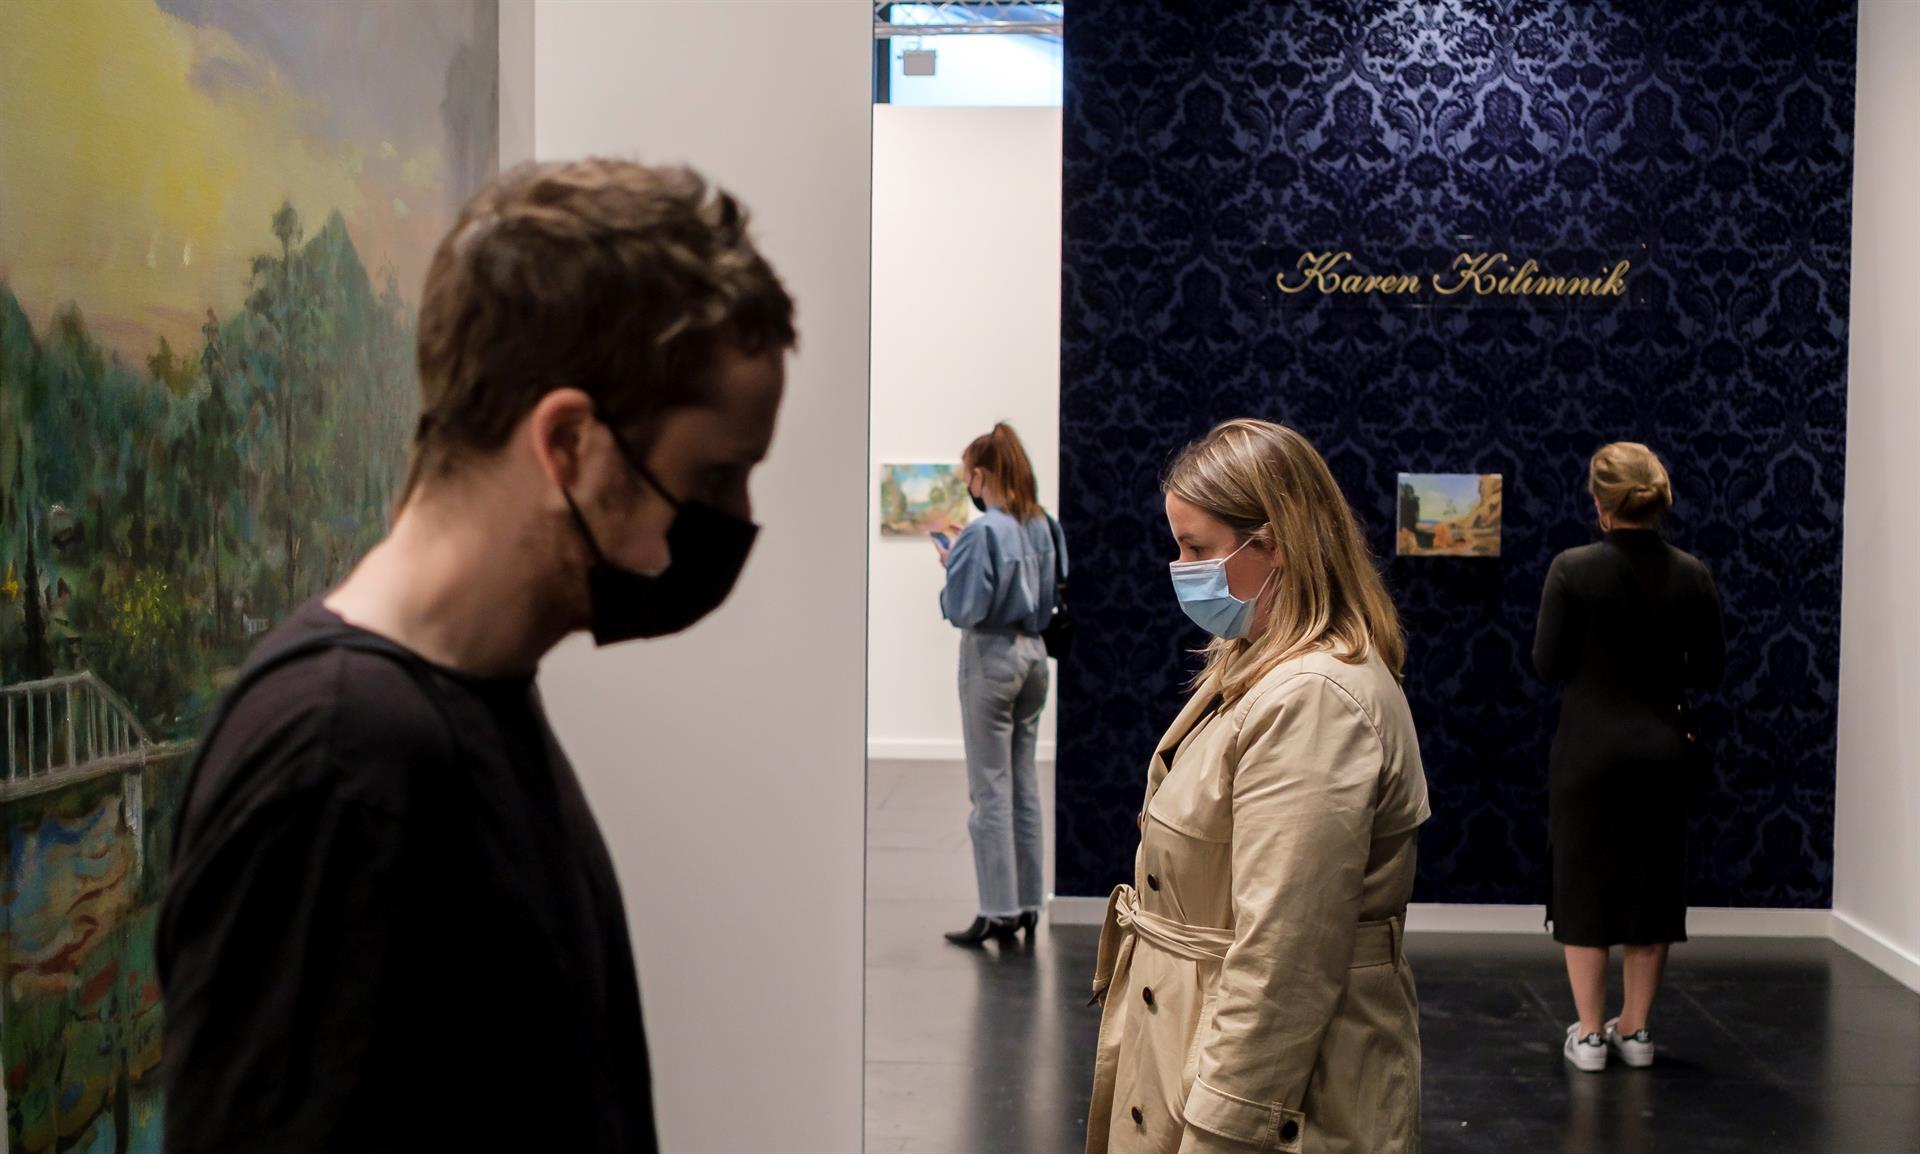 Visitantes apreciam obras de arte na Frieze New York Art Fair